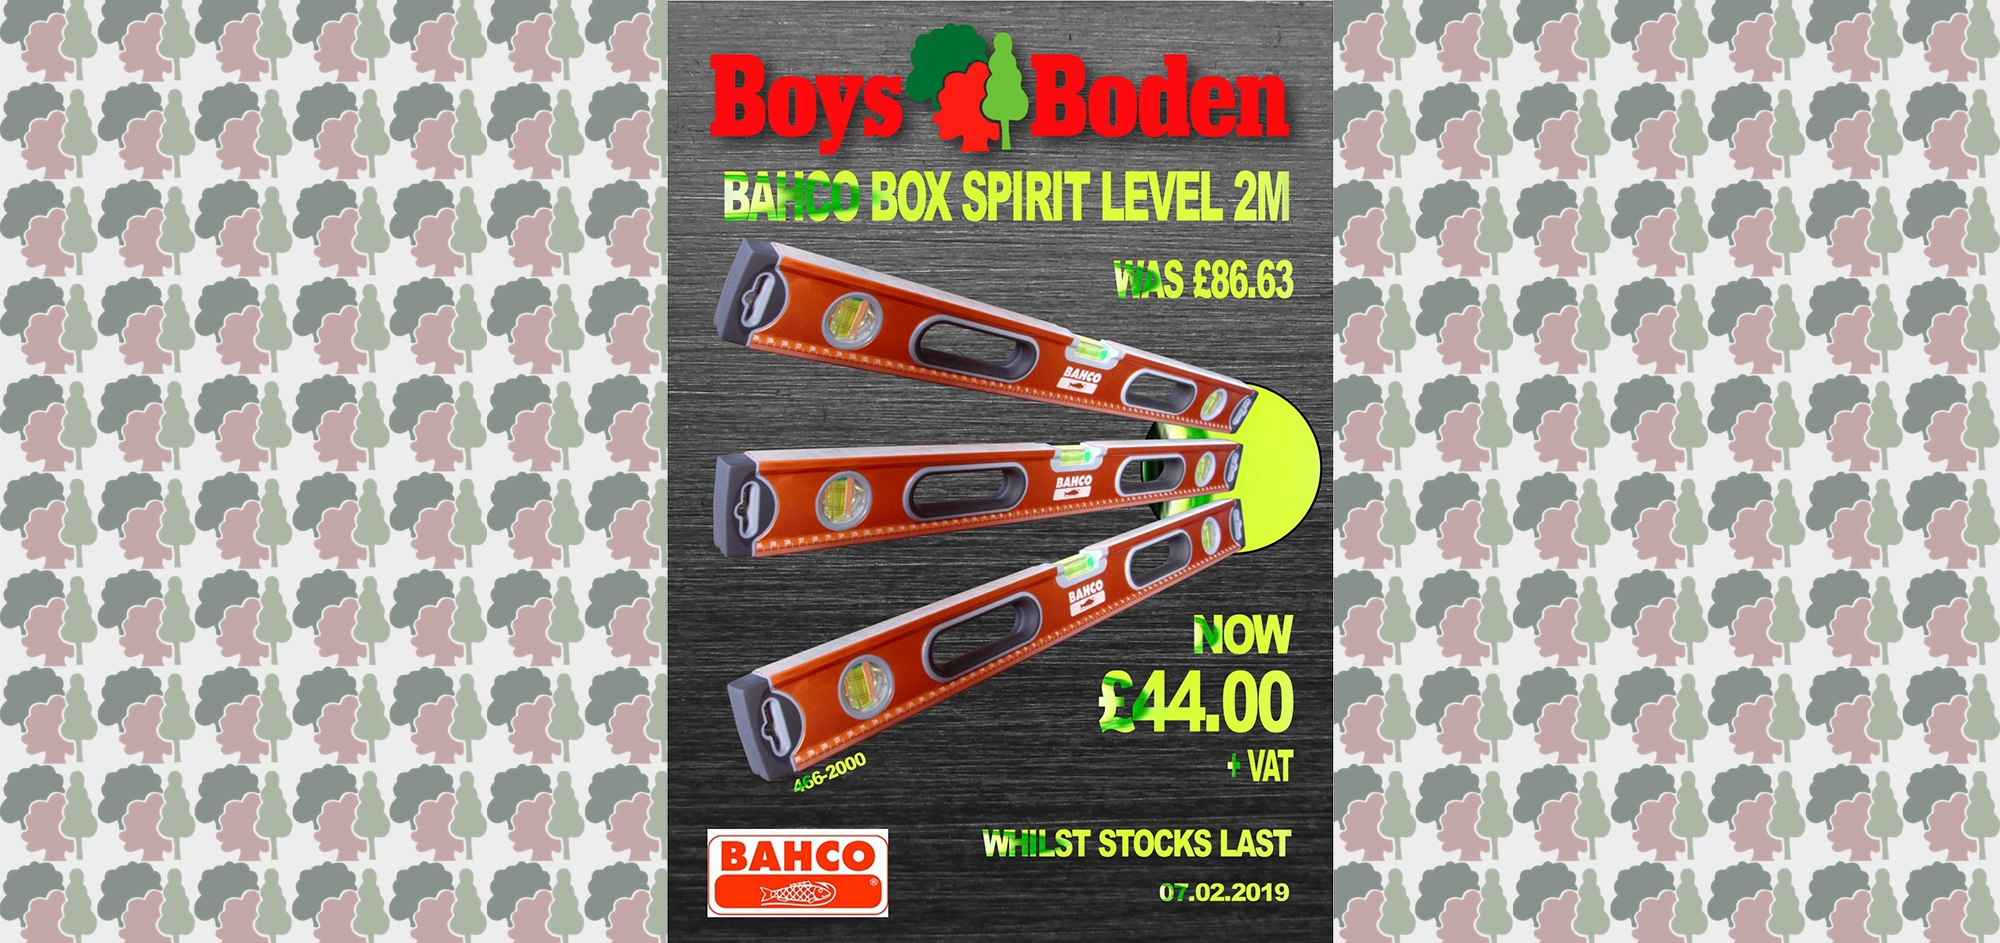 Bahco spirit level, spirit level deals, sale, offers, promotion